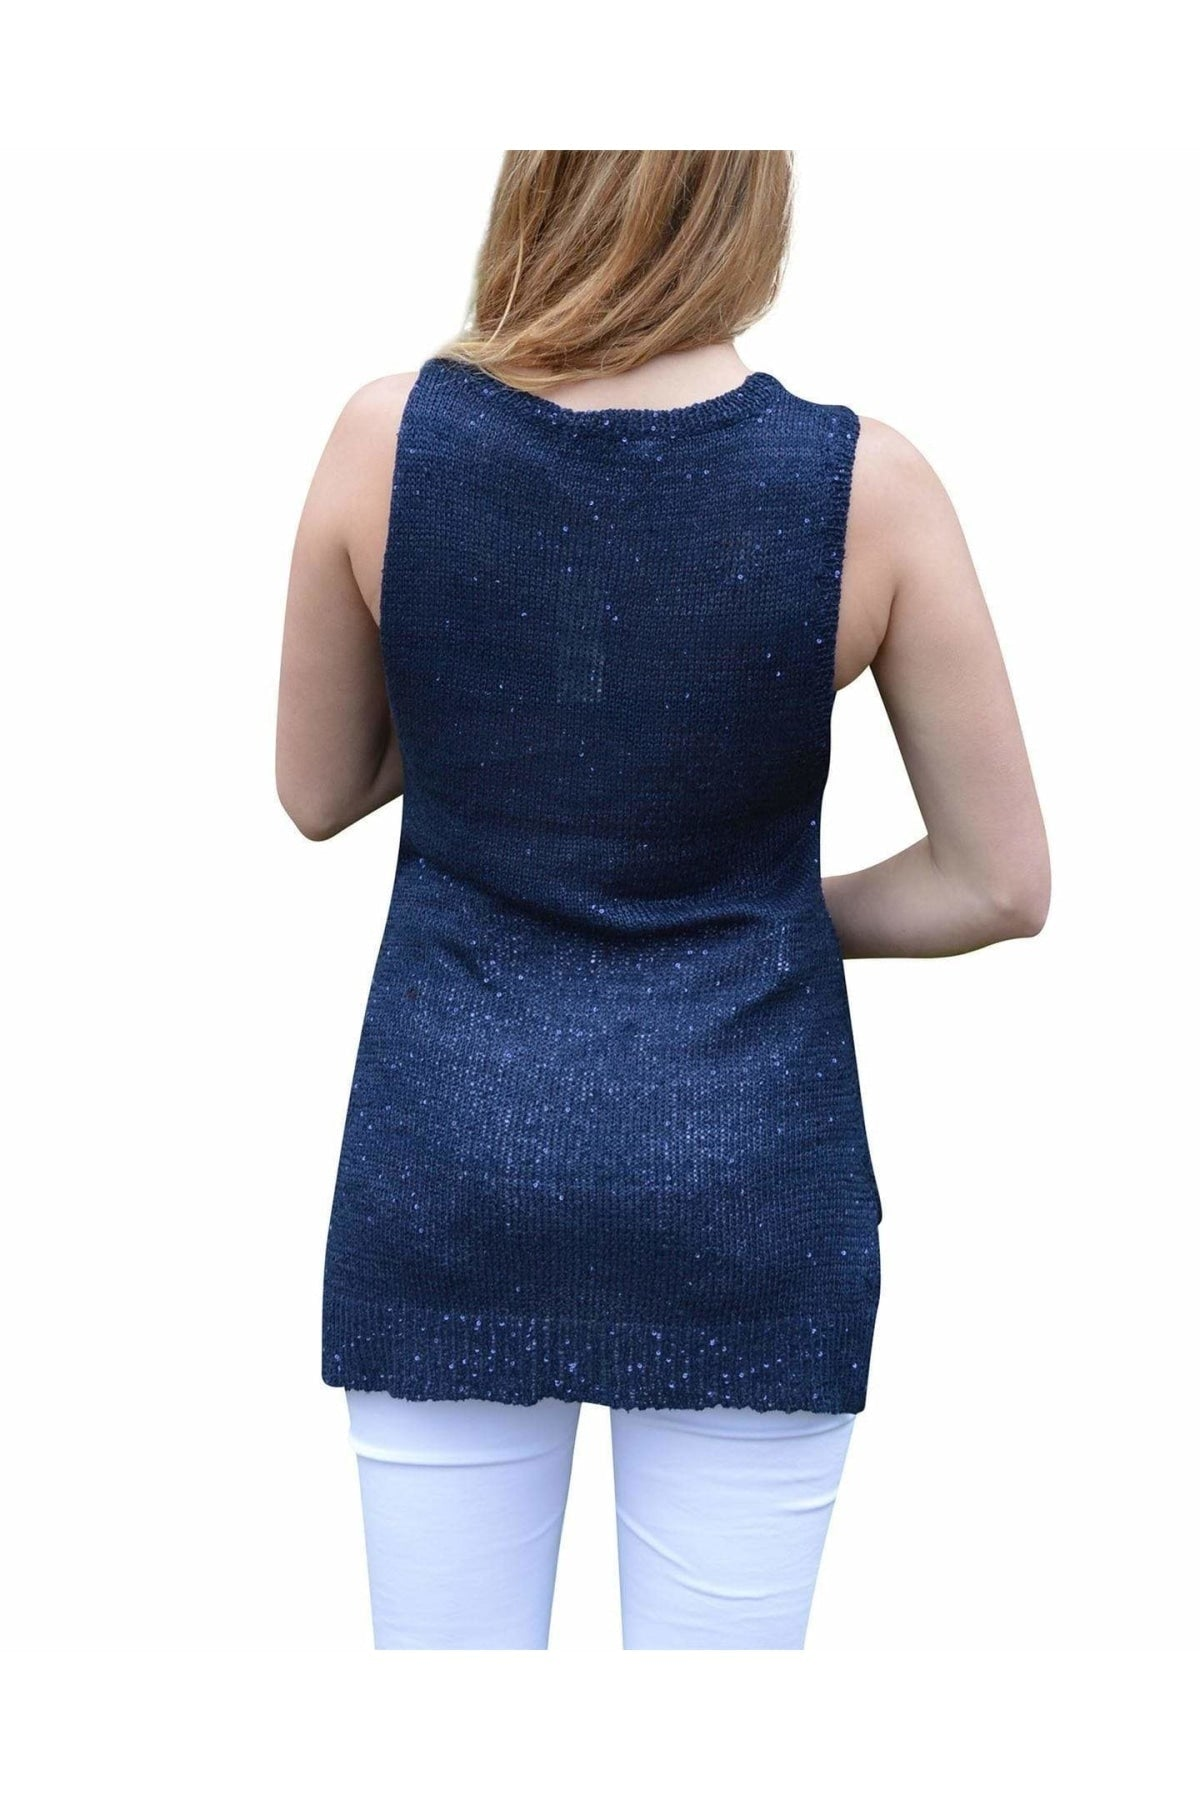 Innocence Innocence Sparkle Sequin Knit Sleeveless Long Top | 8 / Navy Secret Label